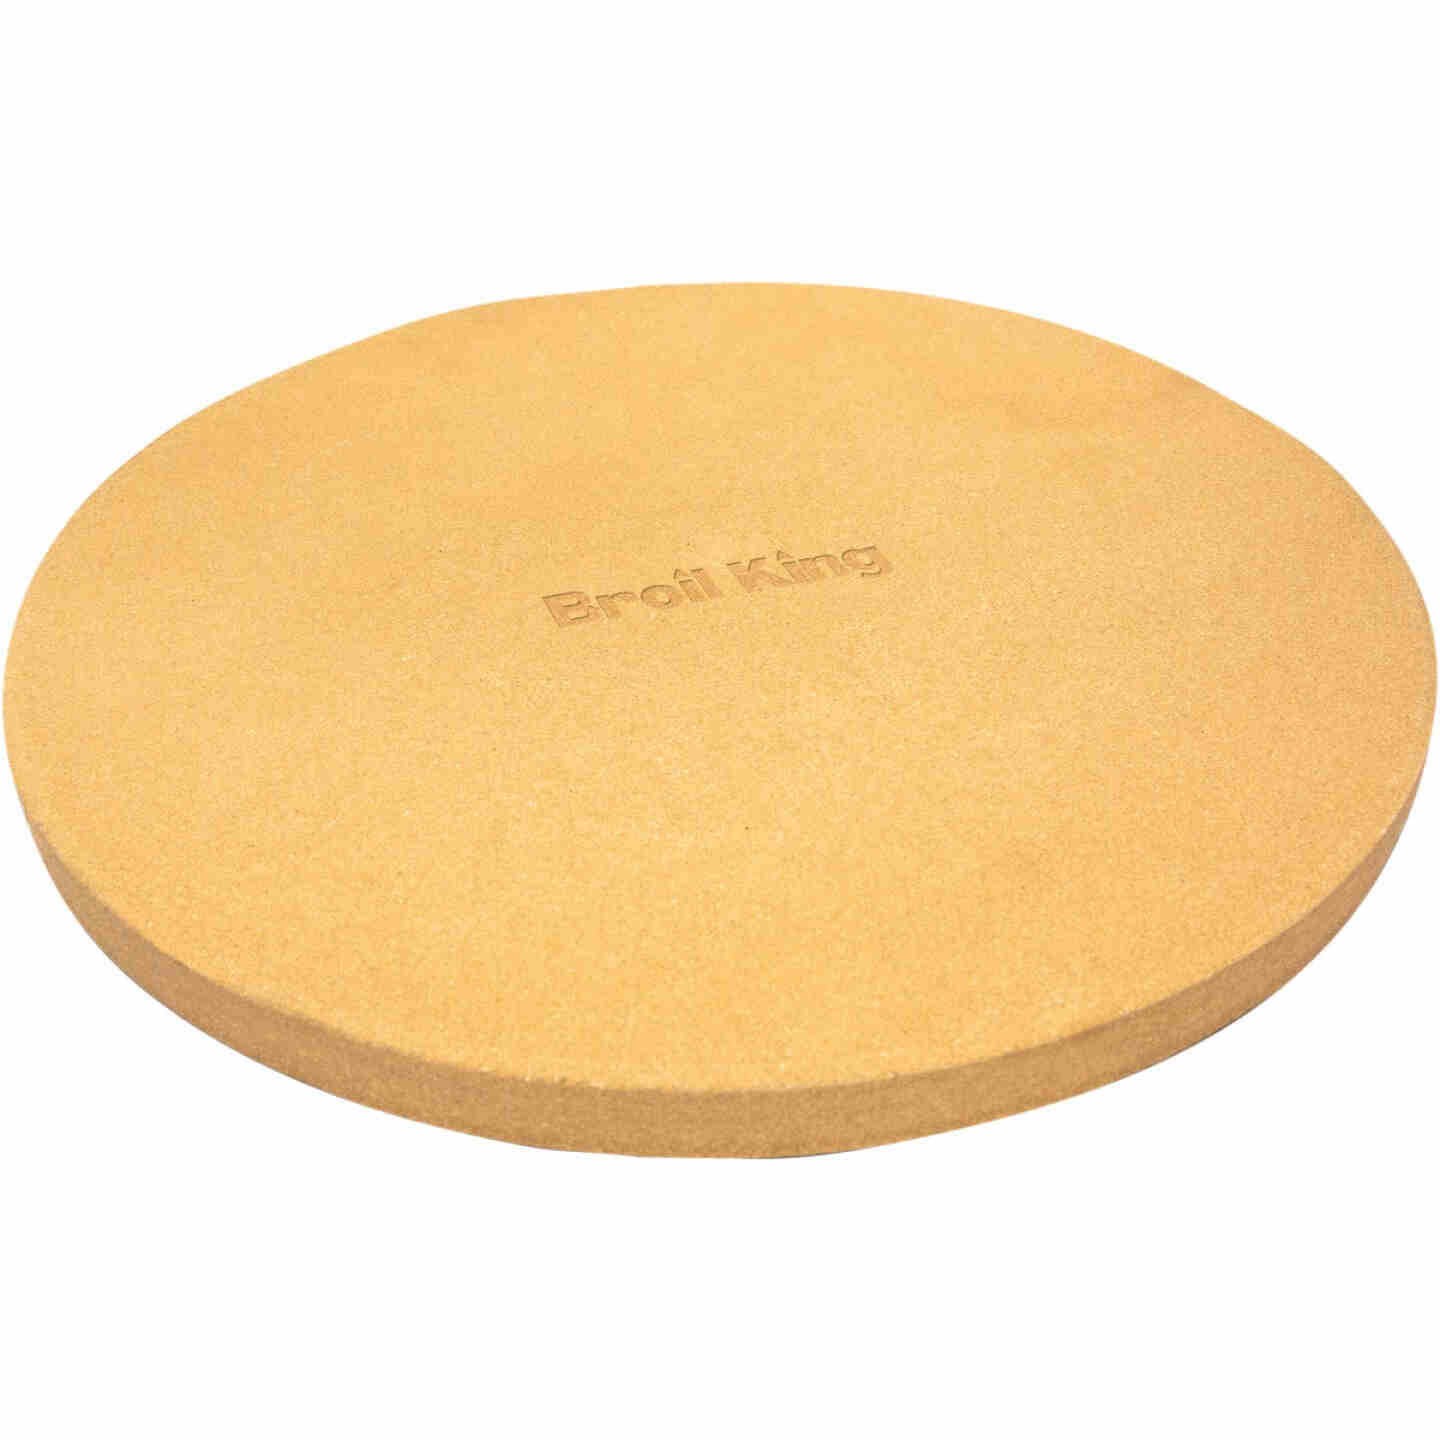 Broil King 15 In. Ceramic Composite Extra Thick Grilling Pizza Stone Image 1